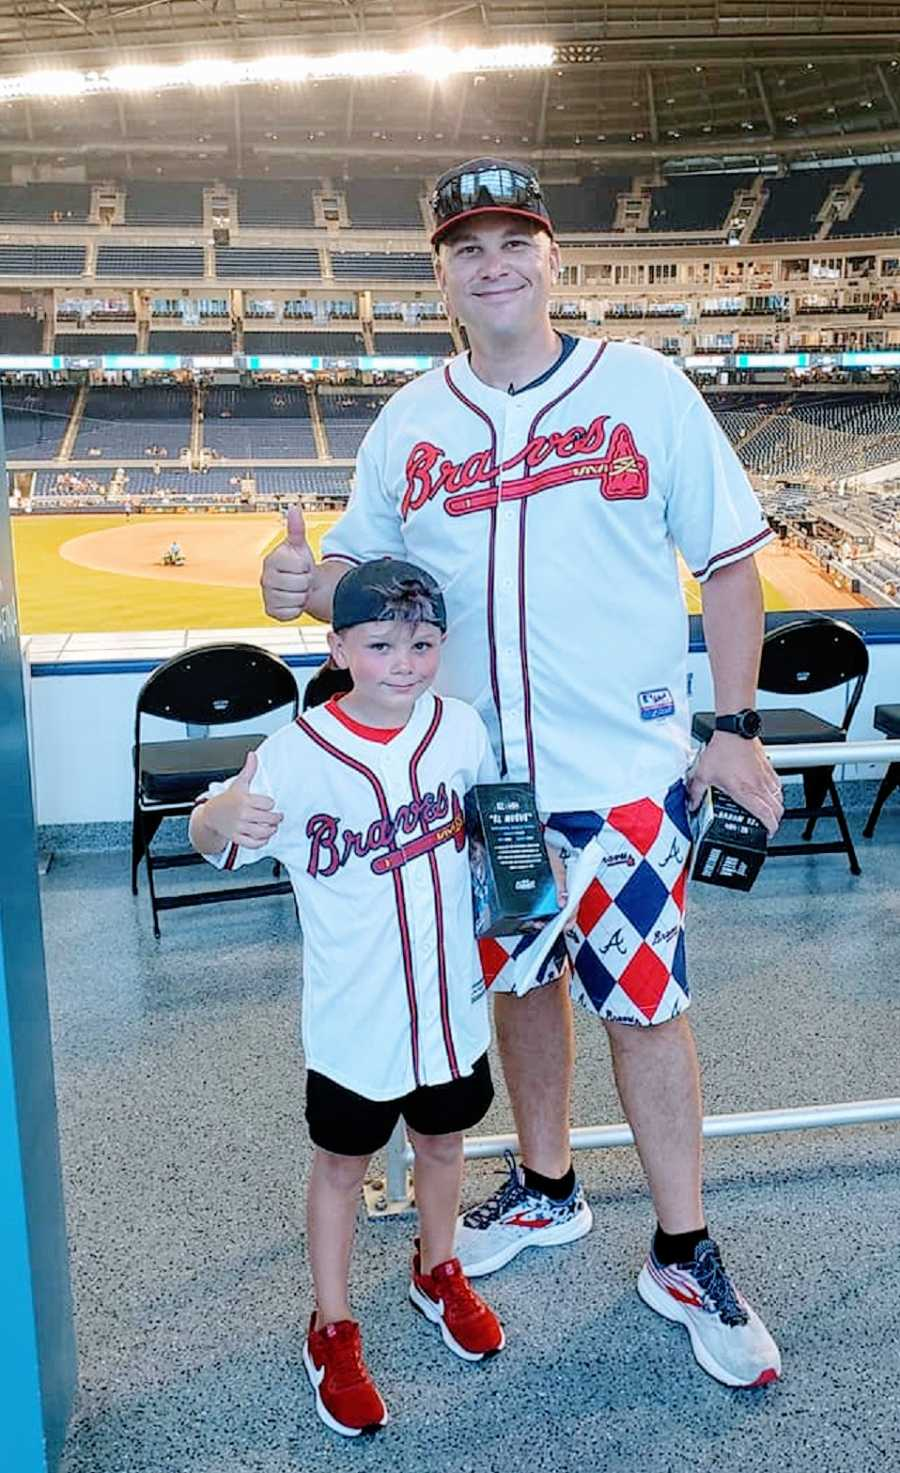 A boy and his father wearing Braves jerseys at a baseball game